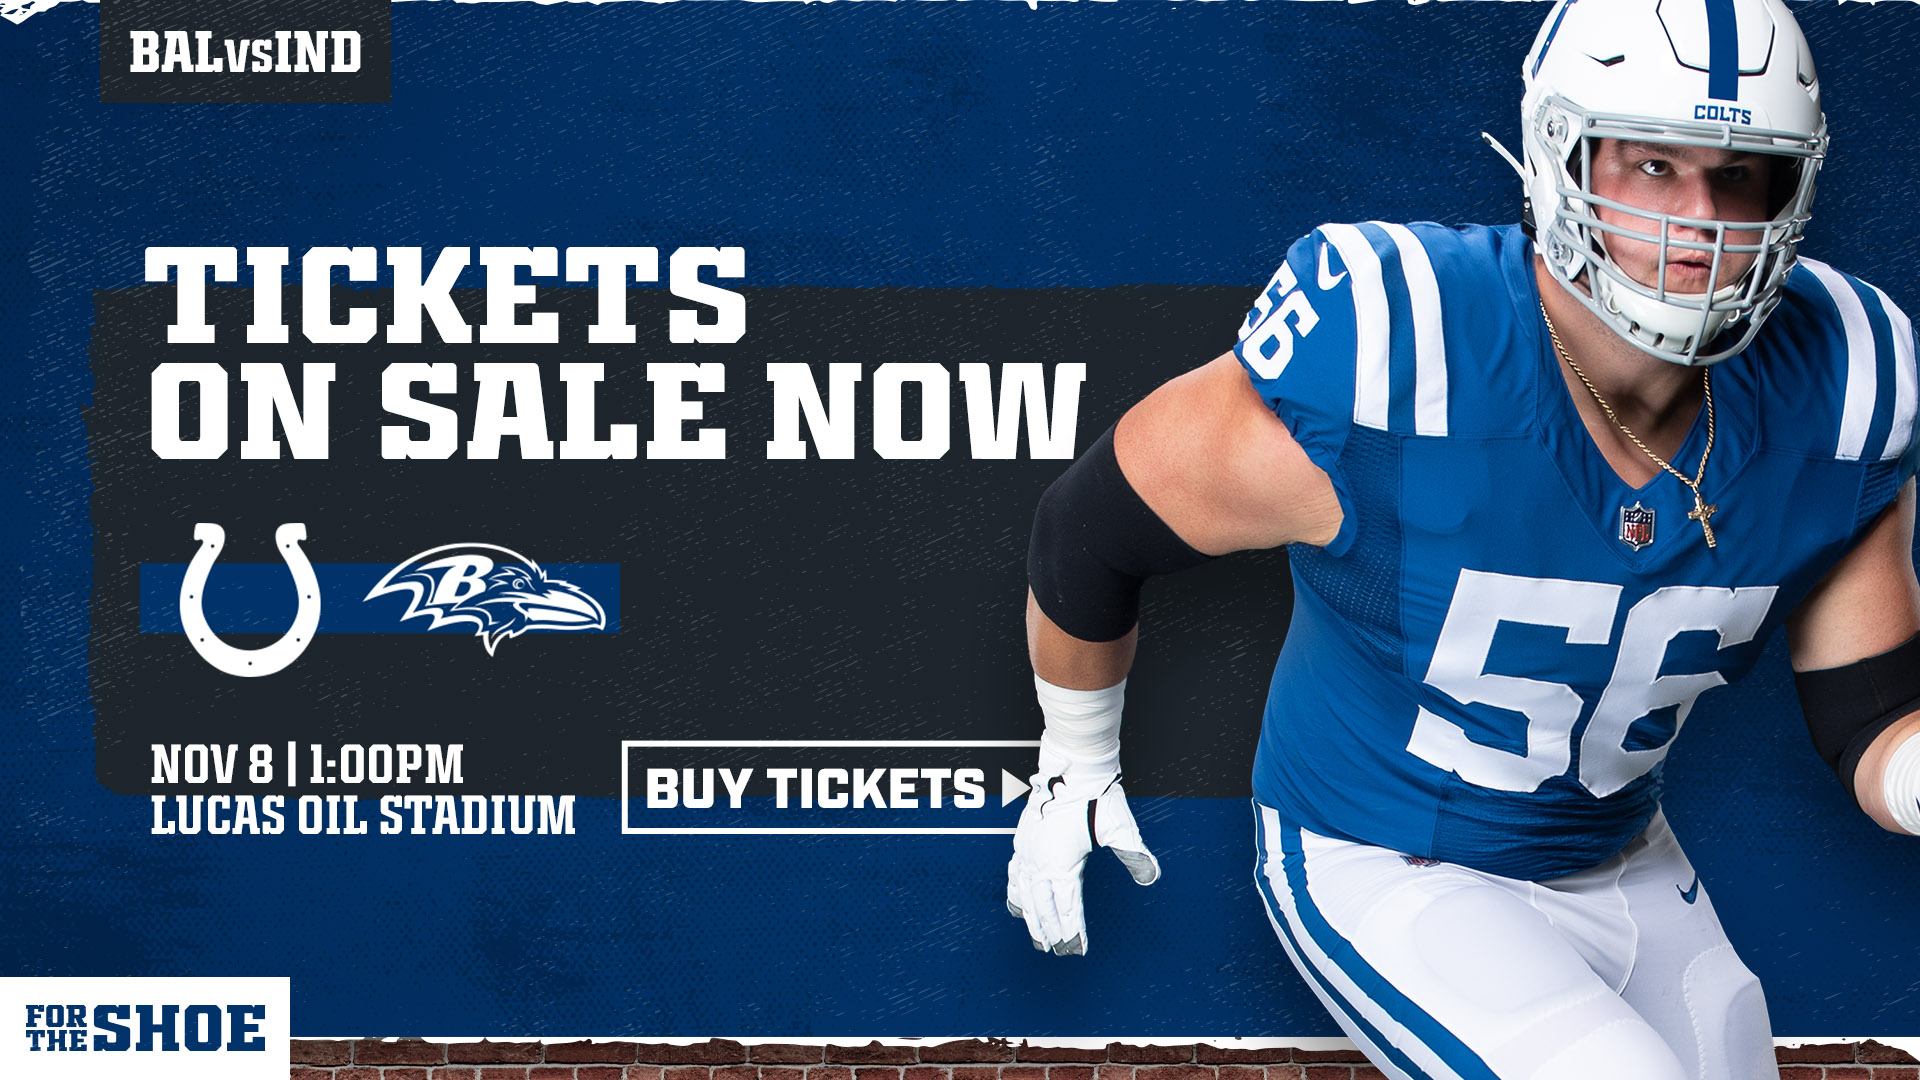 JOIN US AT LUCAS OIL STADIUM ON NOV. 8TH